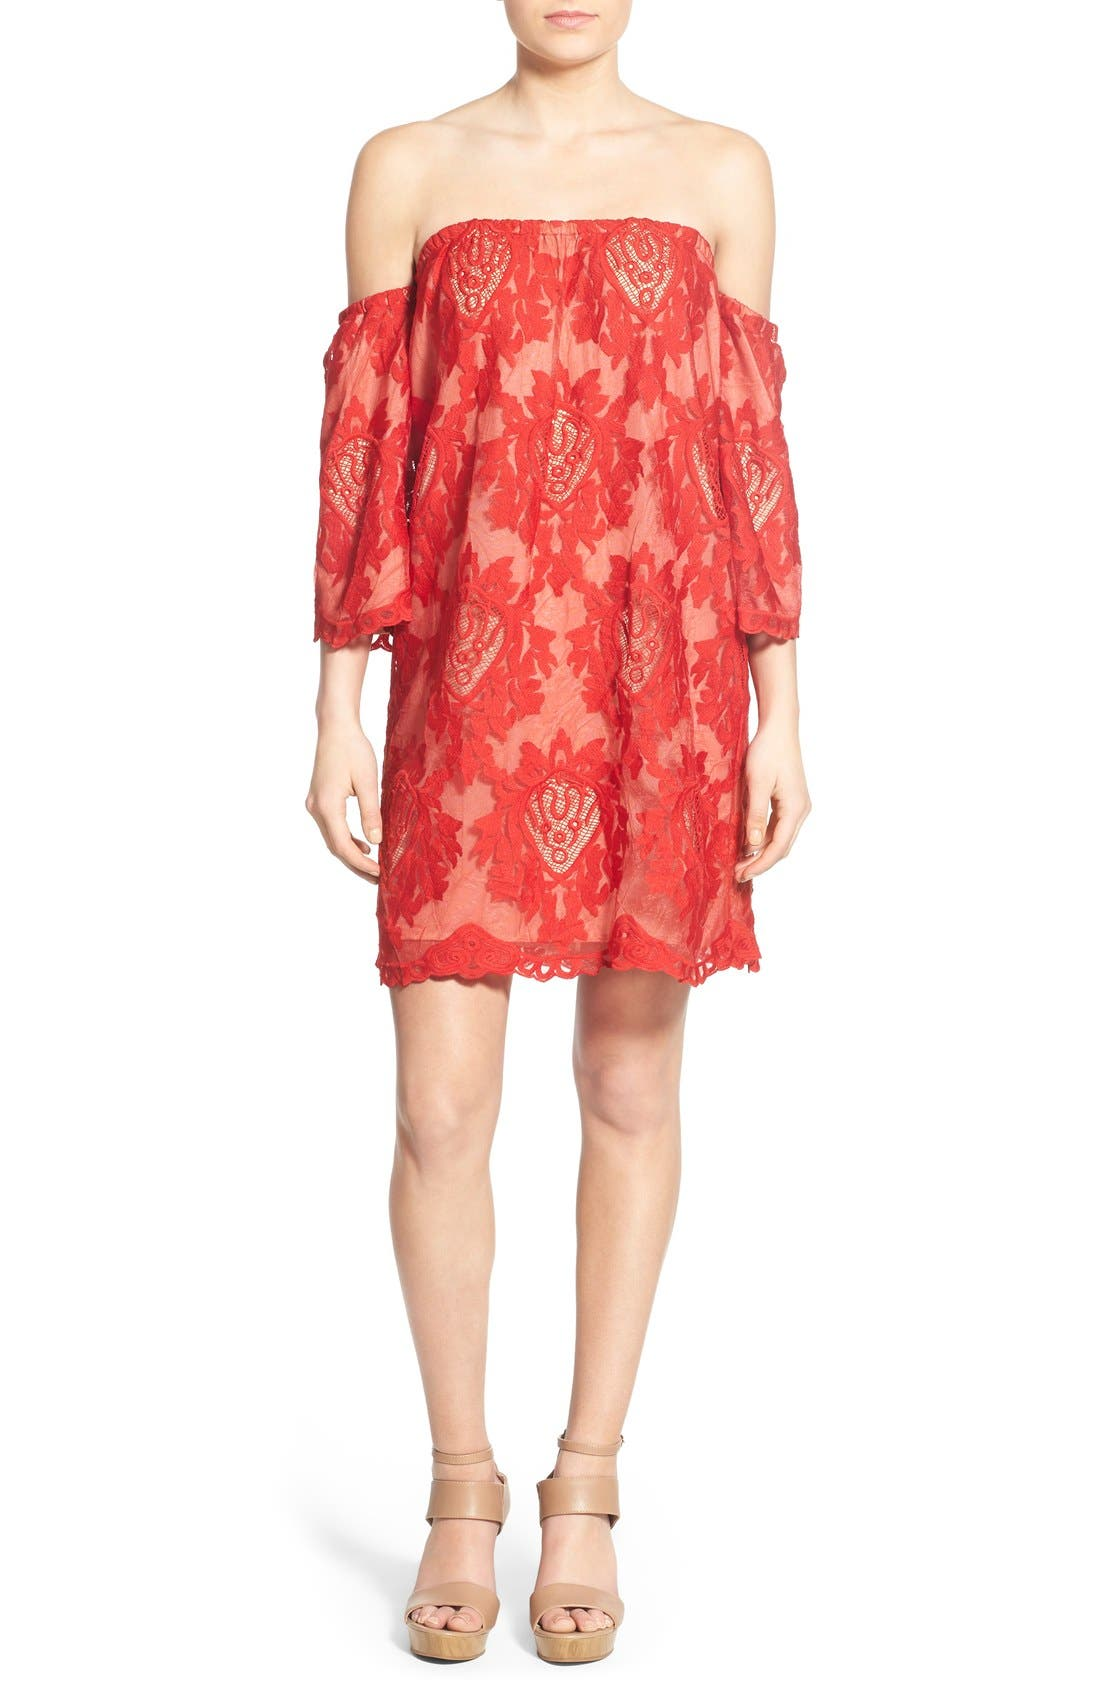 Alternate Image 1 Selected - Storee Lace Off the Shoulder Dress